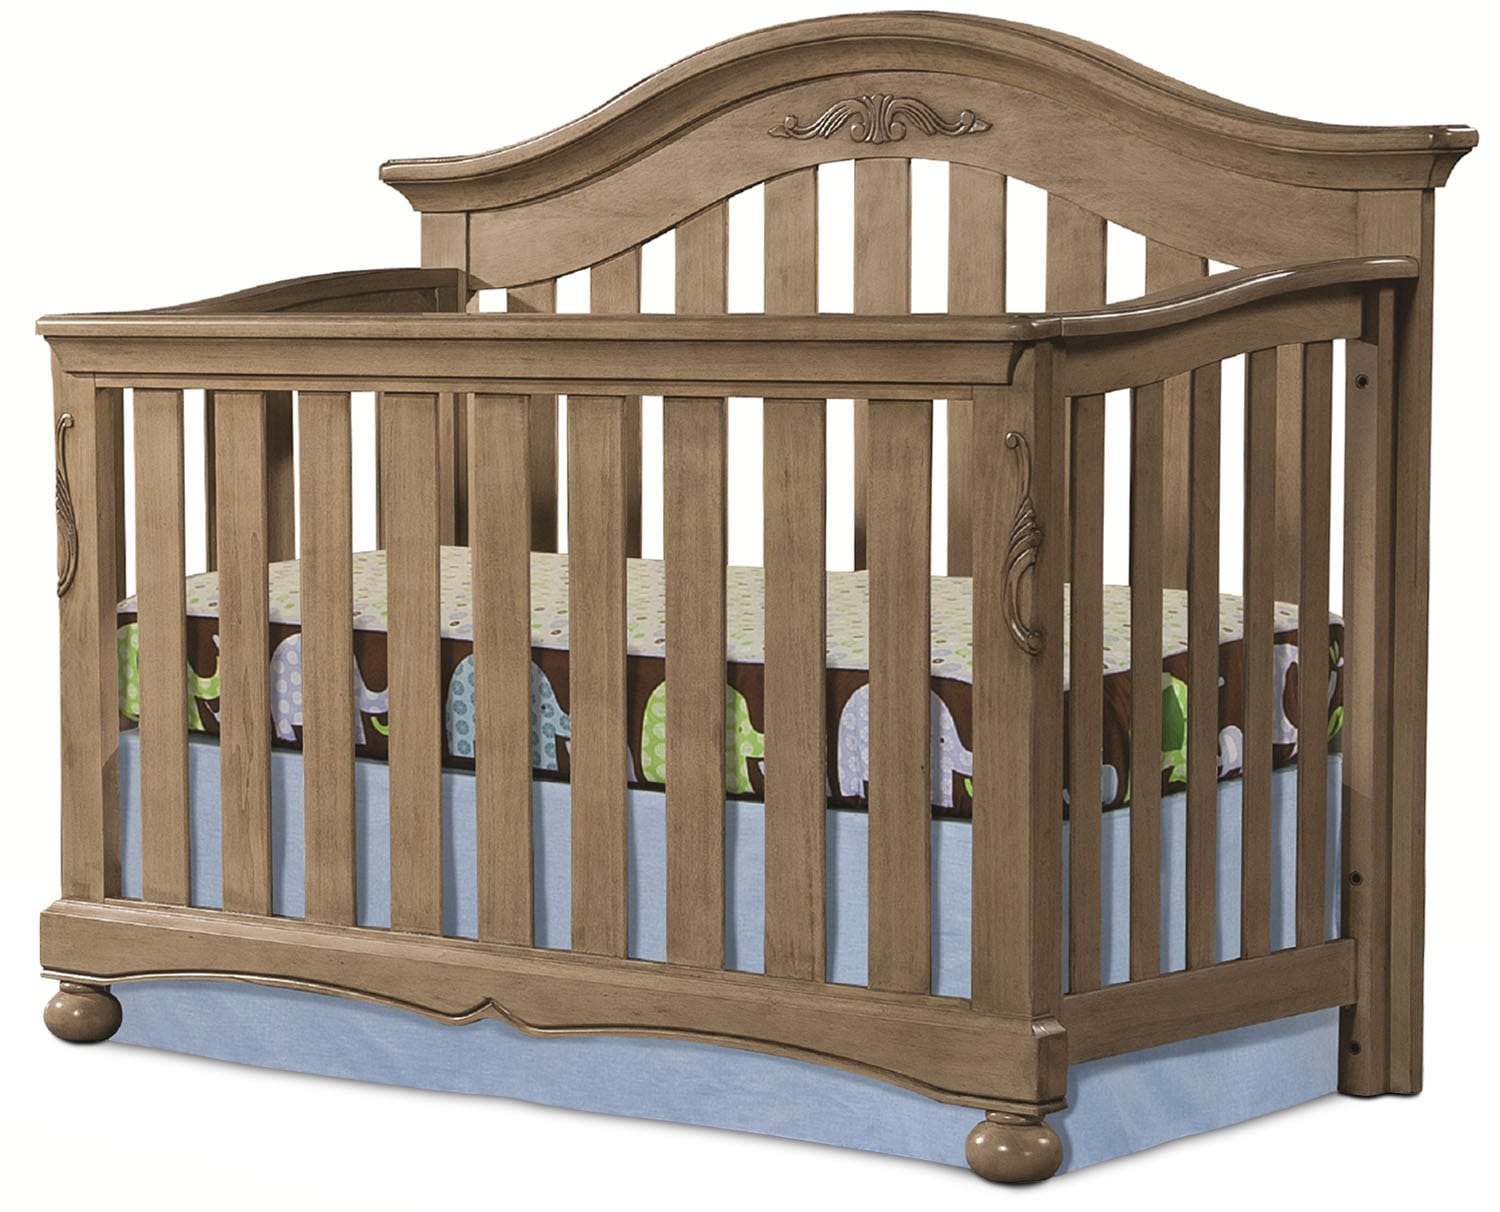 Darcy Convertible Crib - Vintage Neutral